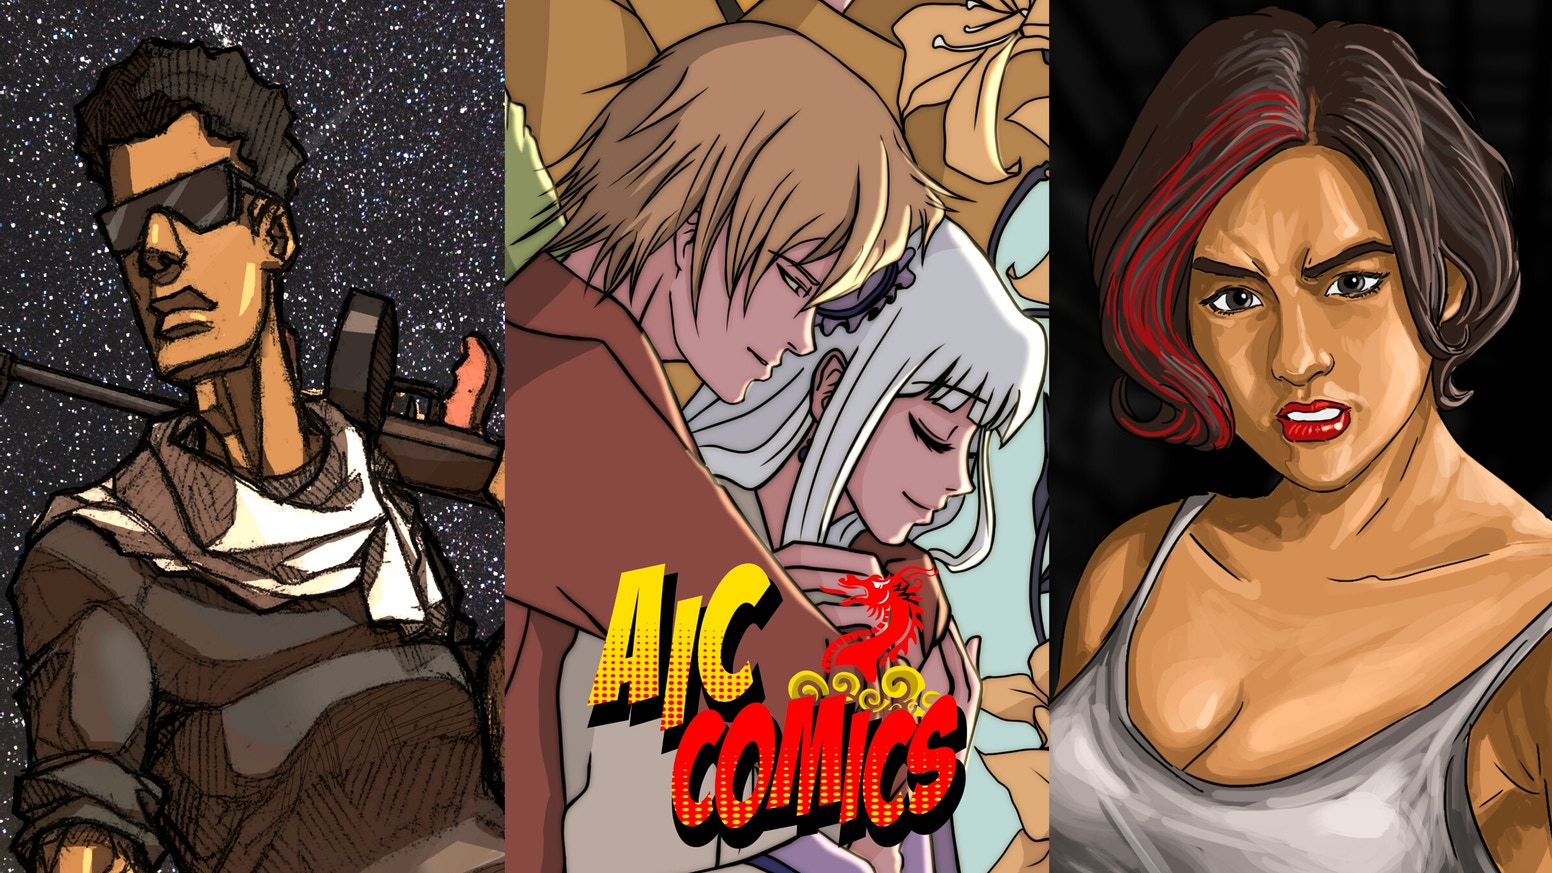 More original independent comic series available in one campaign. Start from the beginning or continue your journey with AIC Comics.